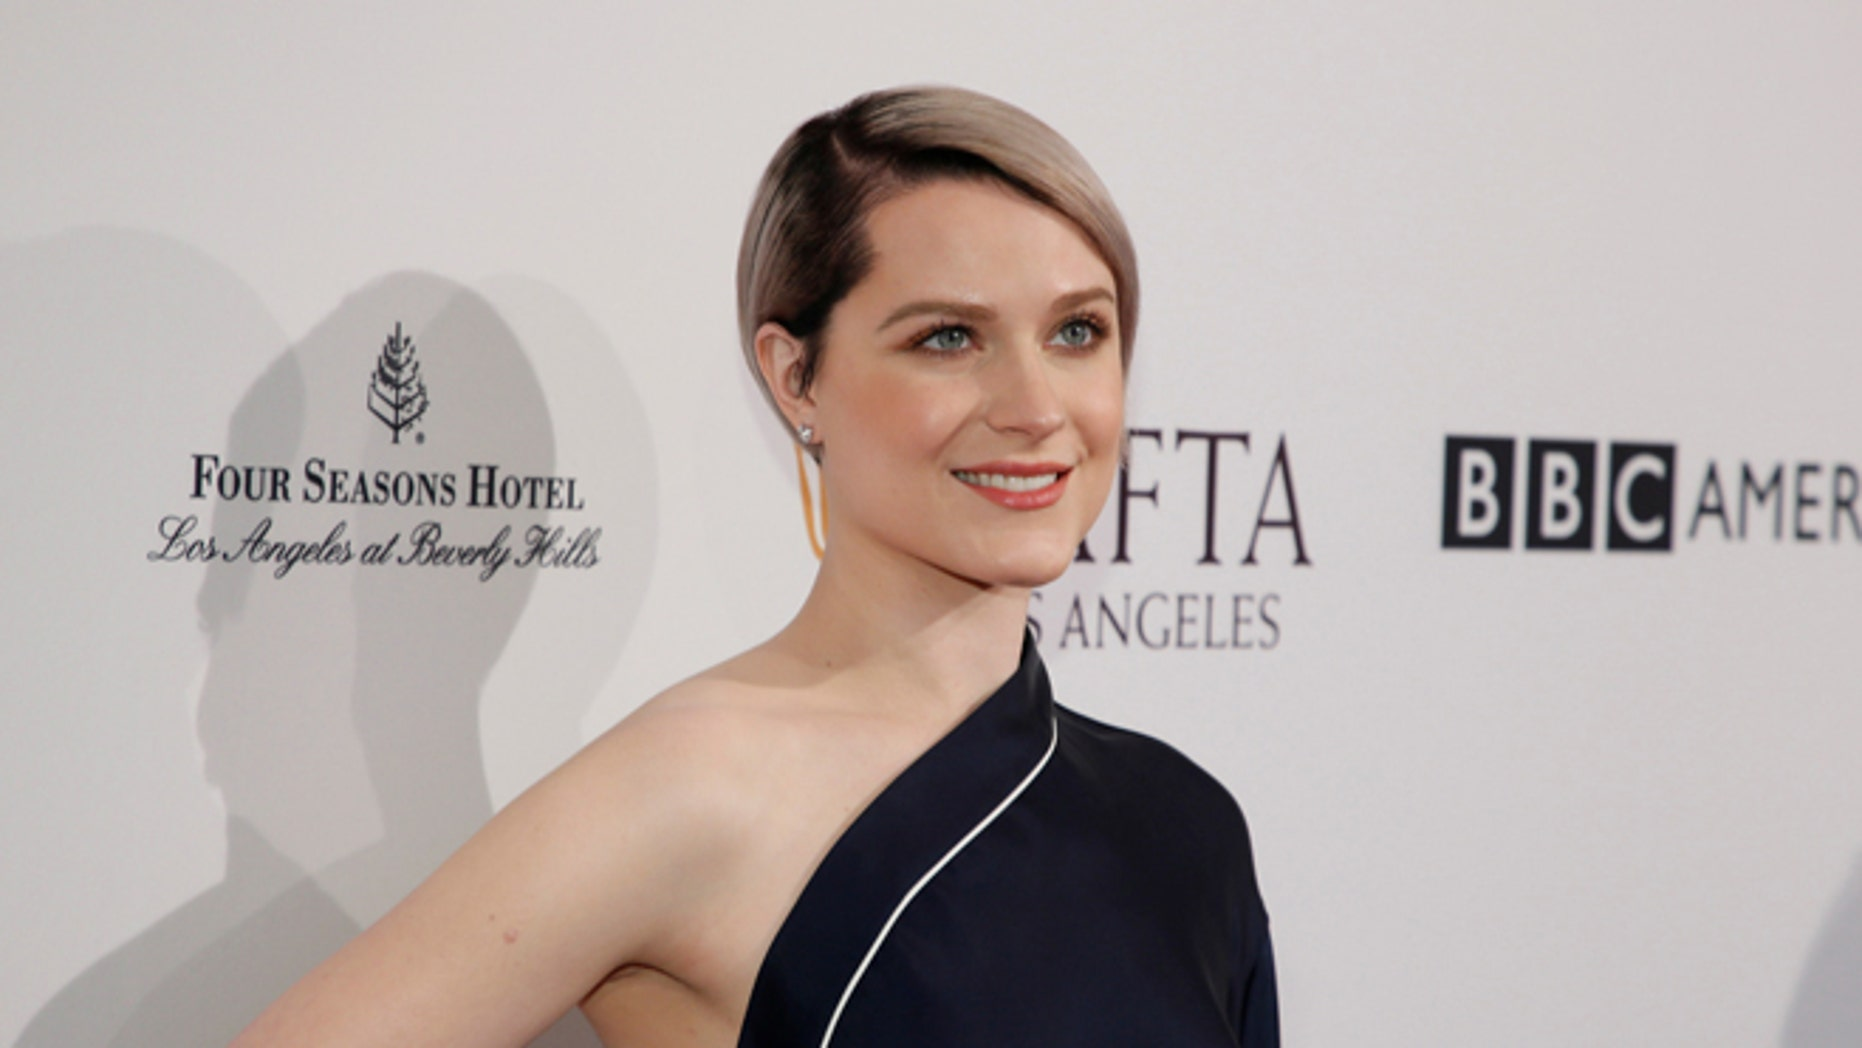 Evan Rachel Wood has moved from Los Angeles to Nashville to raise her son.